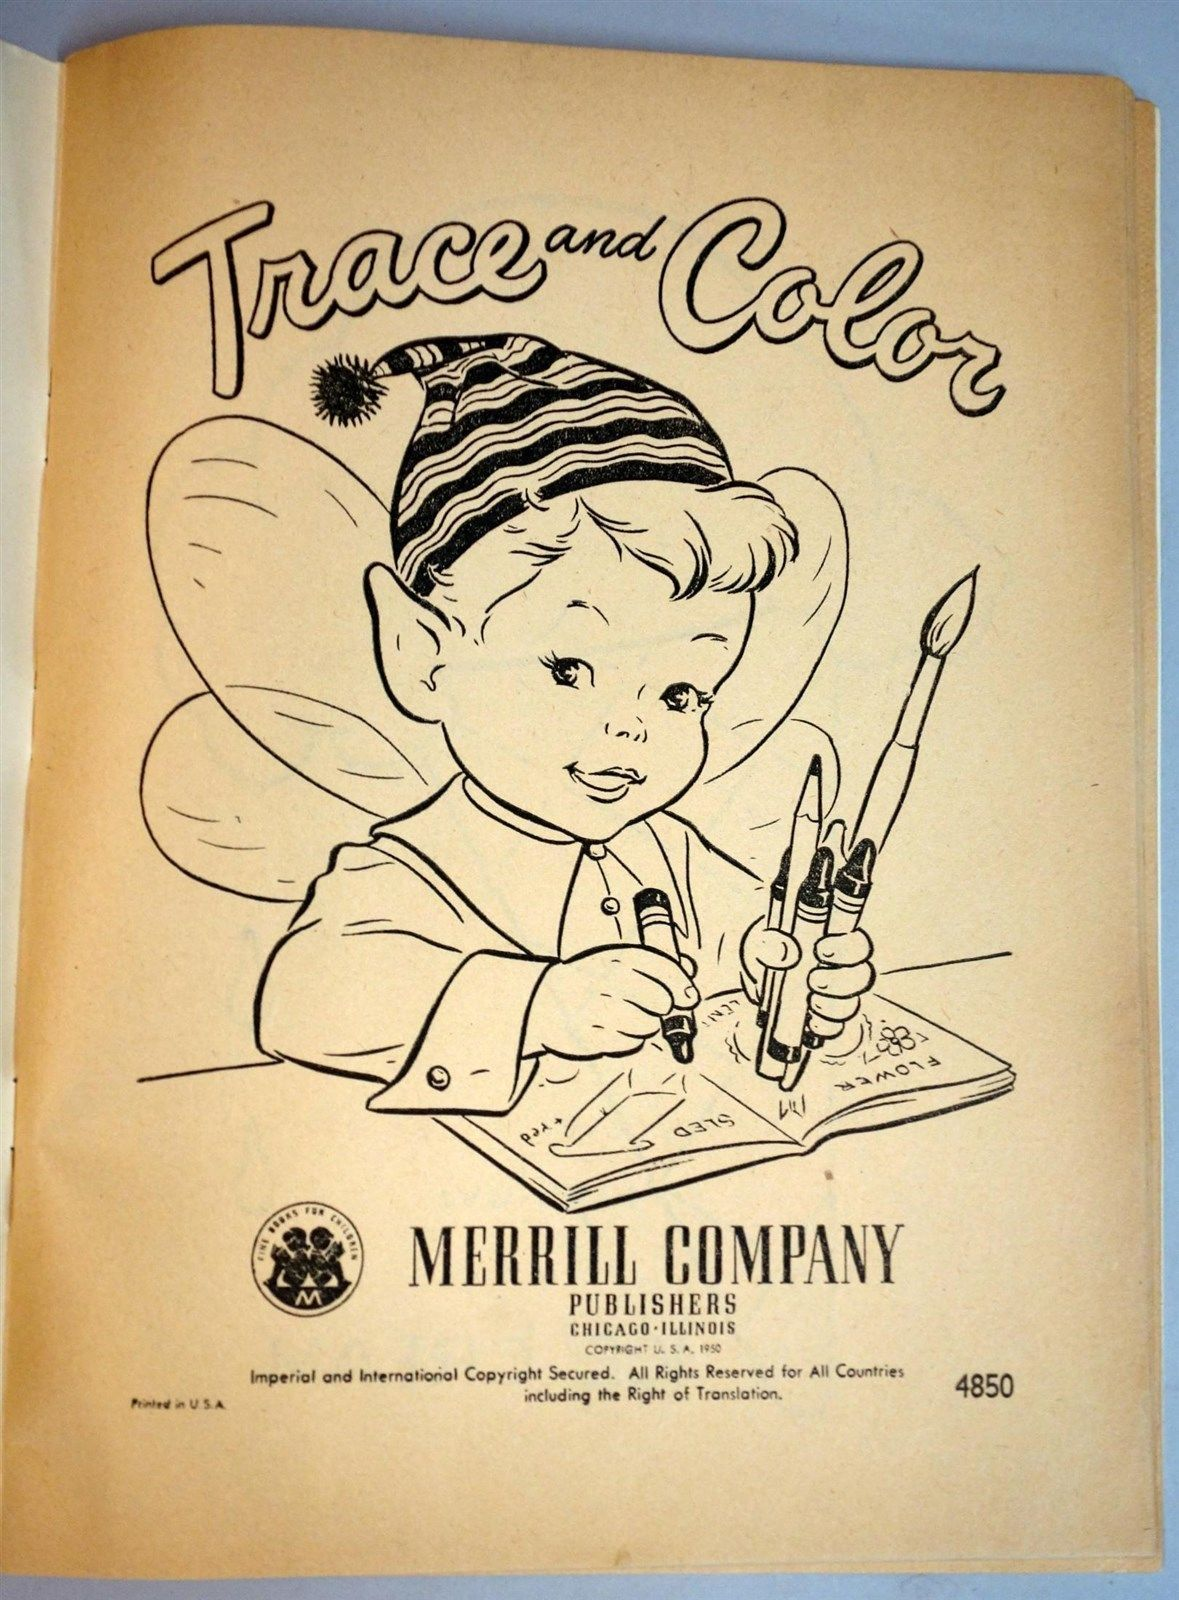 Unused trace u color coloring book illustrated by charlot byi